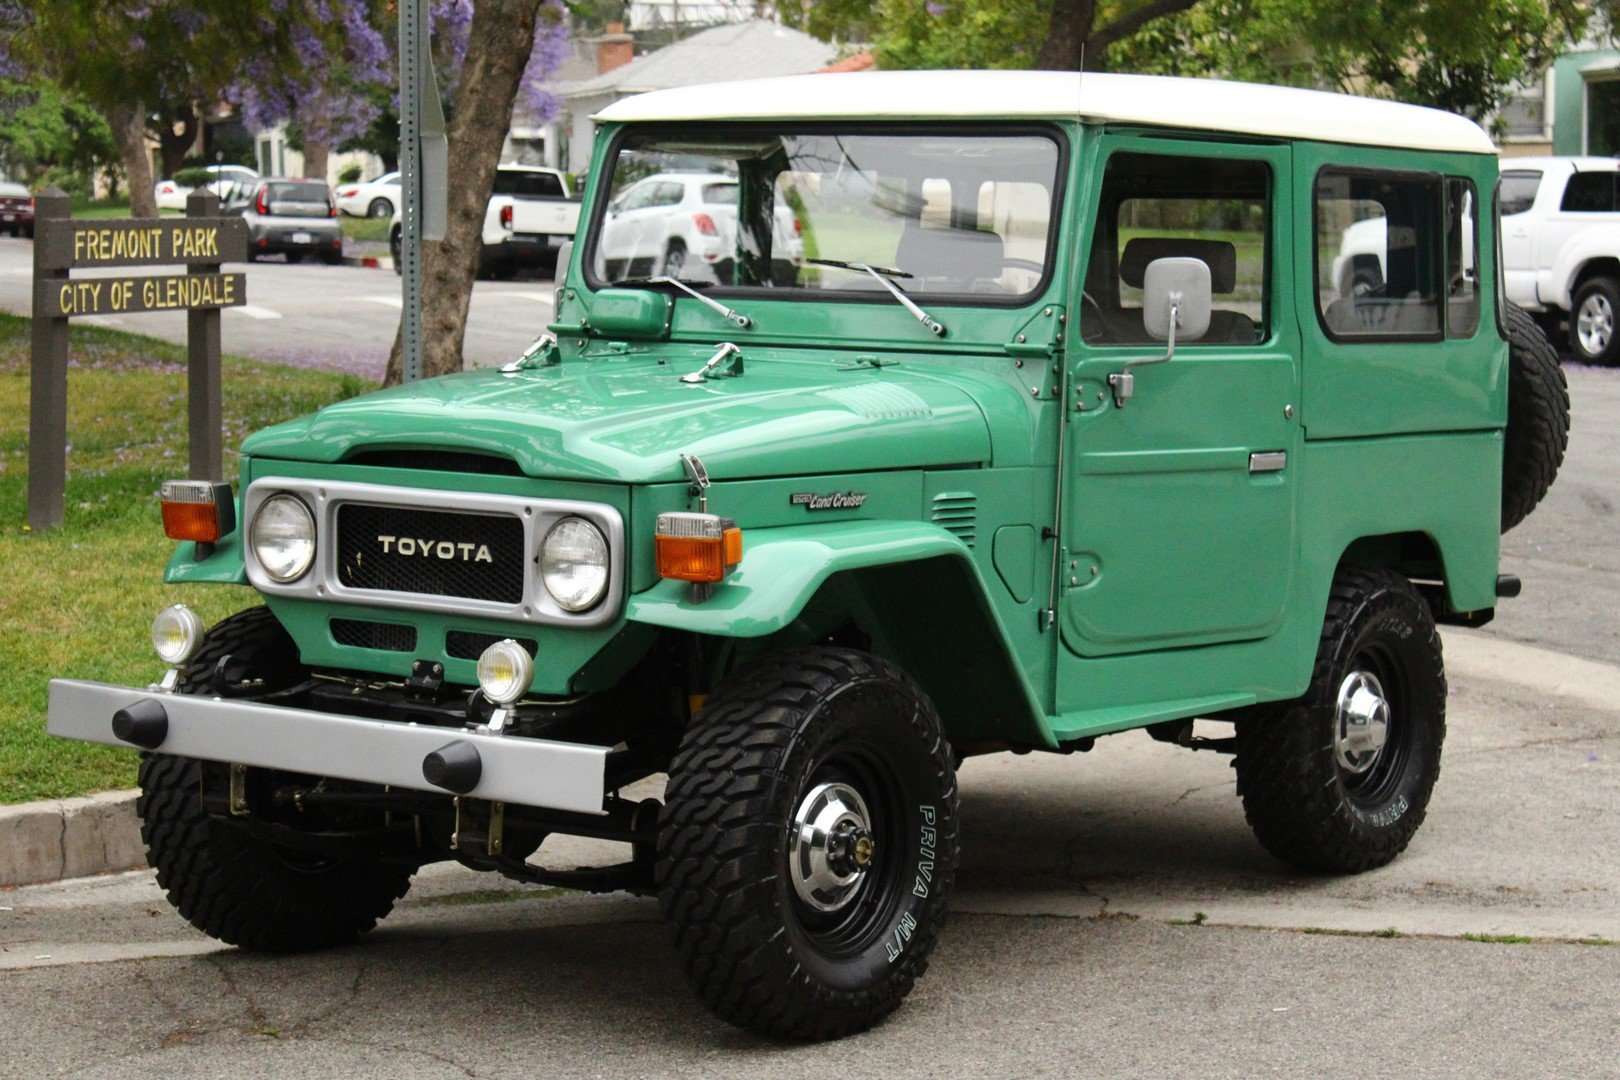 1980 TOYOTA LAND CRUISER FJ 40 4WD For Sale (picture 1 of 6)